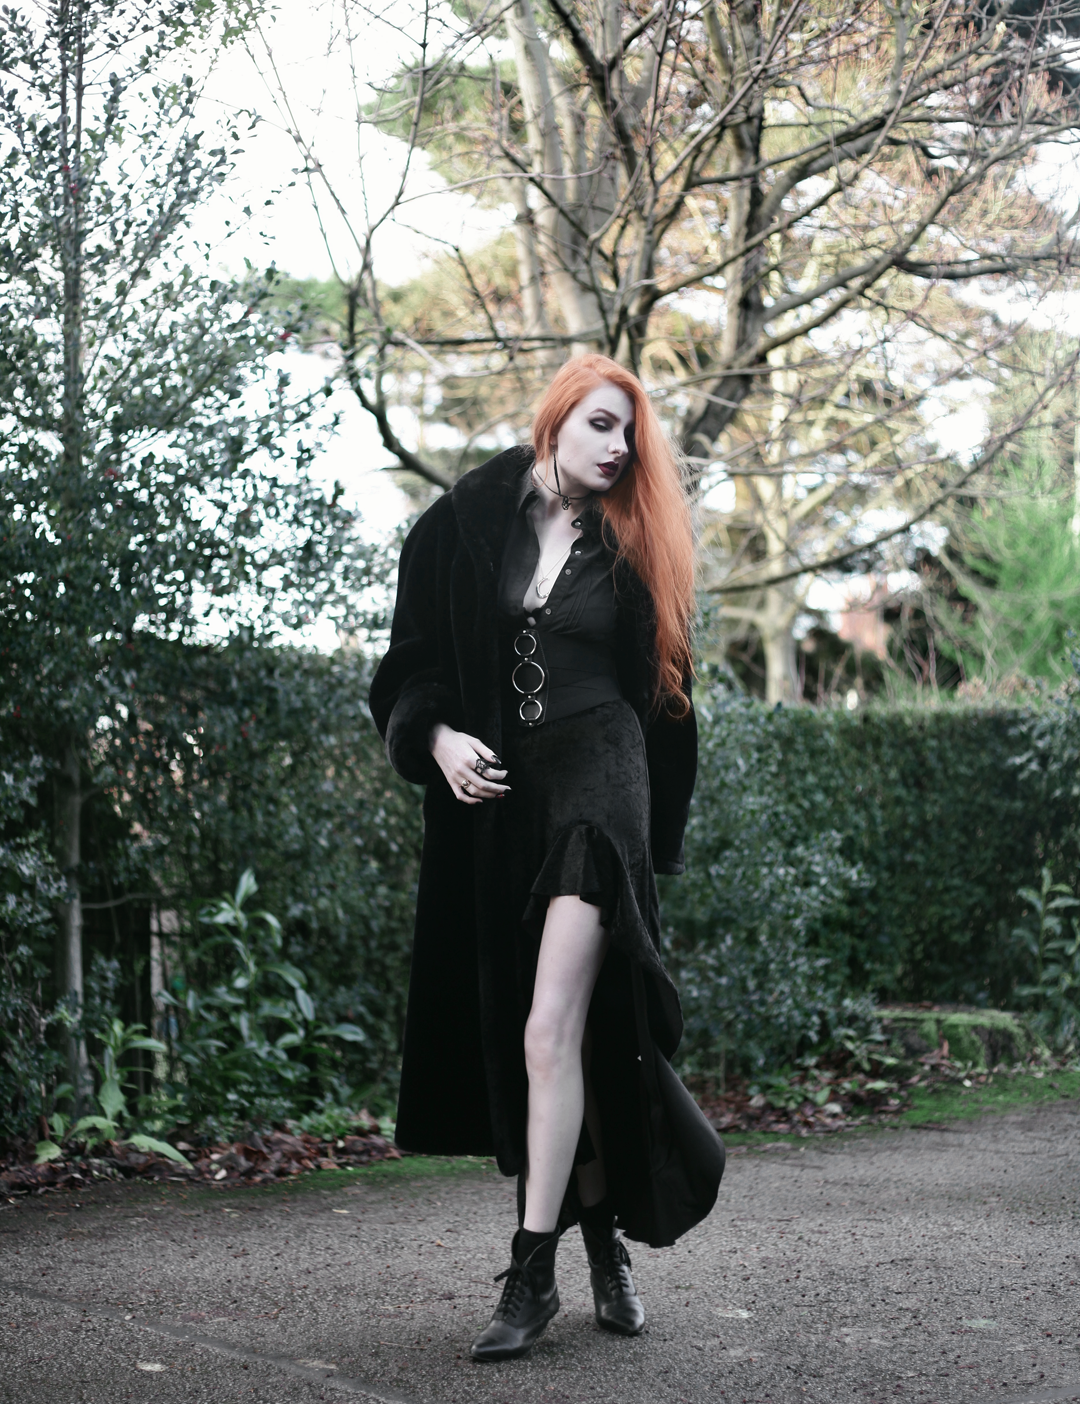 Olivia Emily wears a Maxi Fax Fur Coat Black Shirt, Asos Triple Ring Belt, Rokoko Velvet High Low Ruffle Skirt, and Vintage Pointed Boots